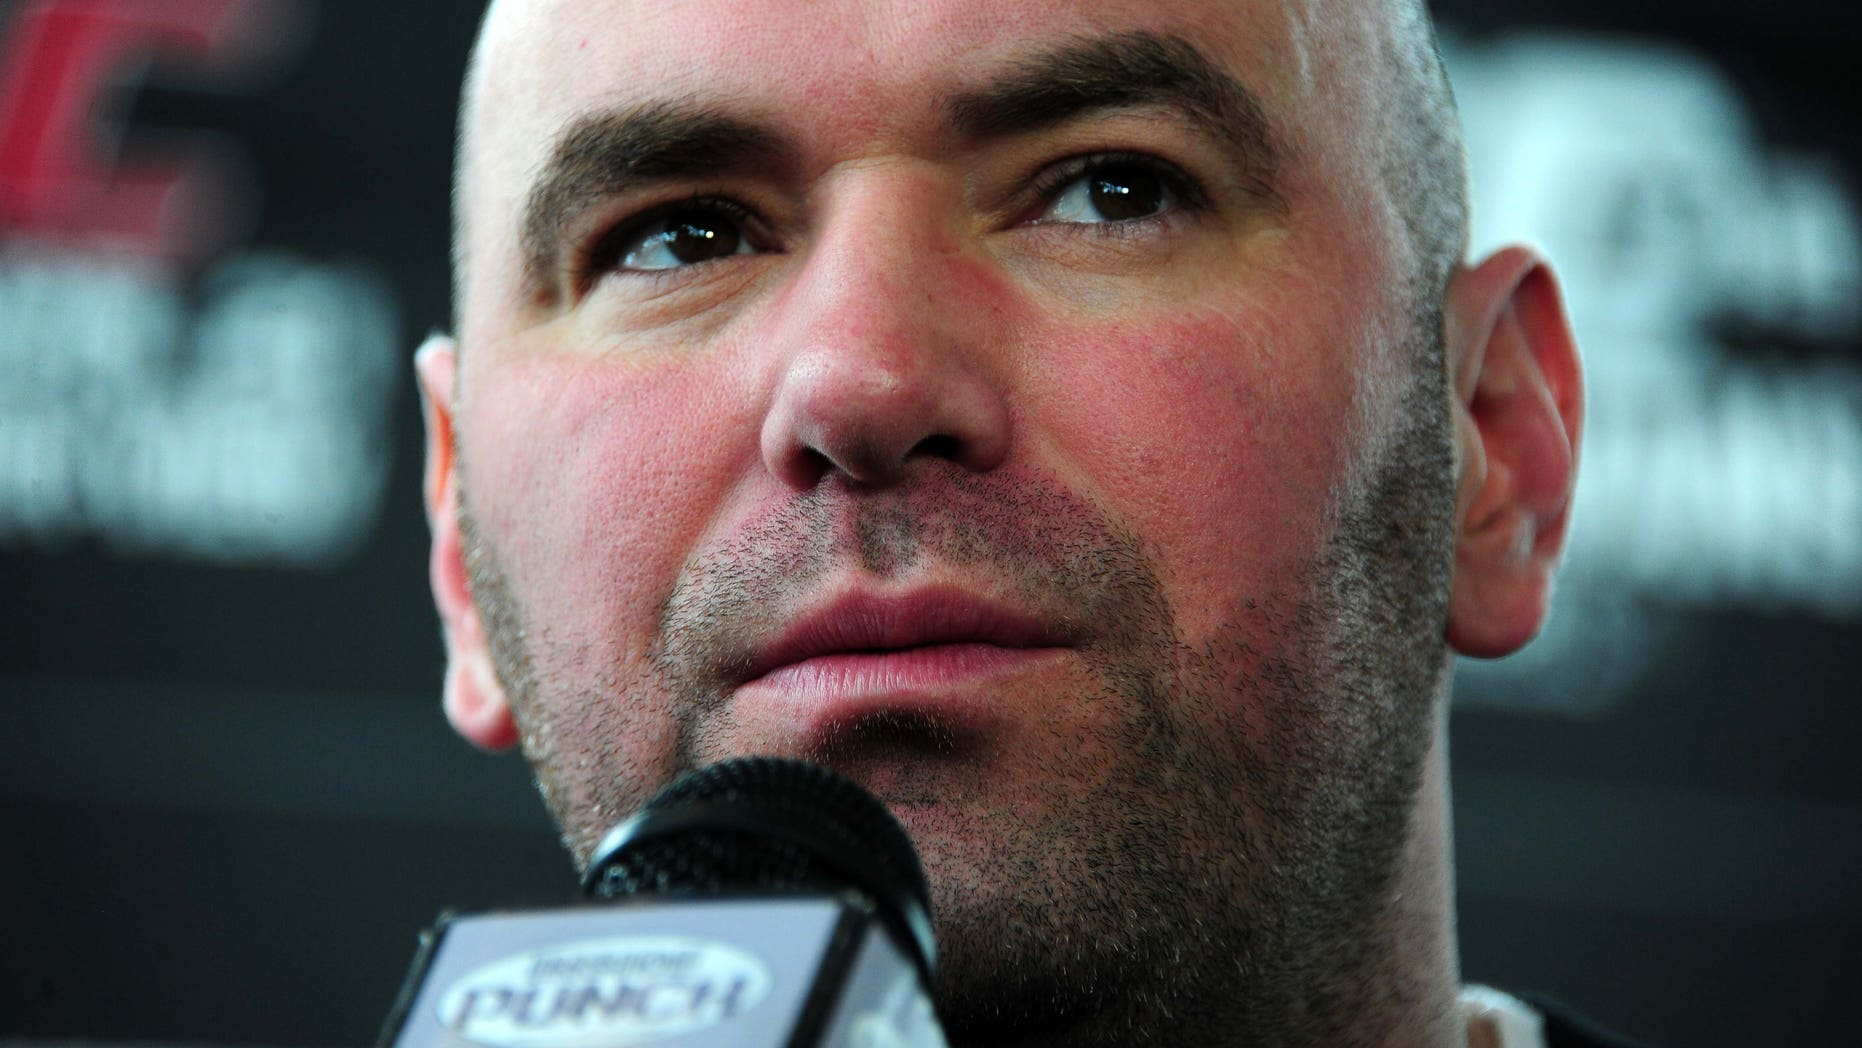 UFC President Dana White speaks during a press conference promoting UFC 146 at Philips Arena on February 16, 2012 in Atlanta, Georgia.